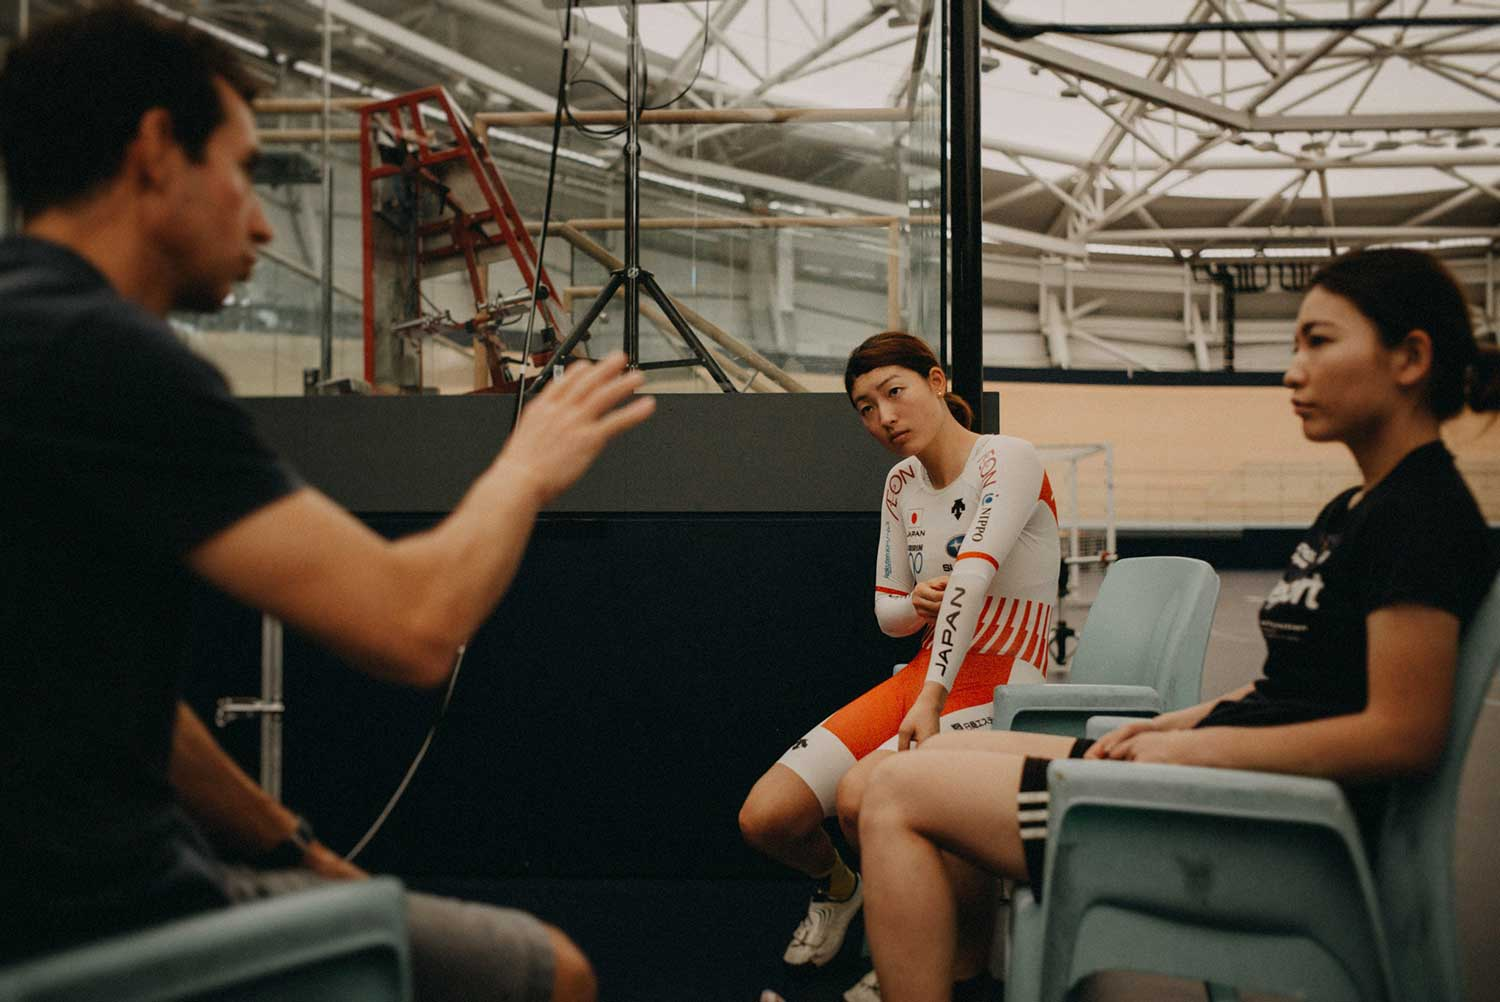 Japanese track cyclist discuss performance with Biomechanist during training session at velodrome